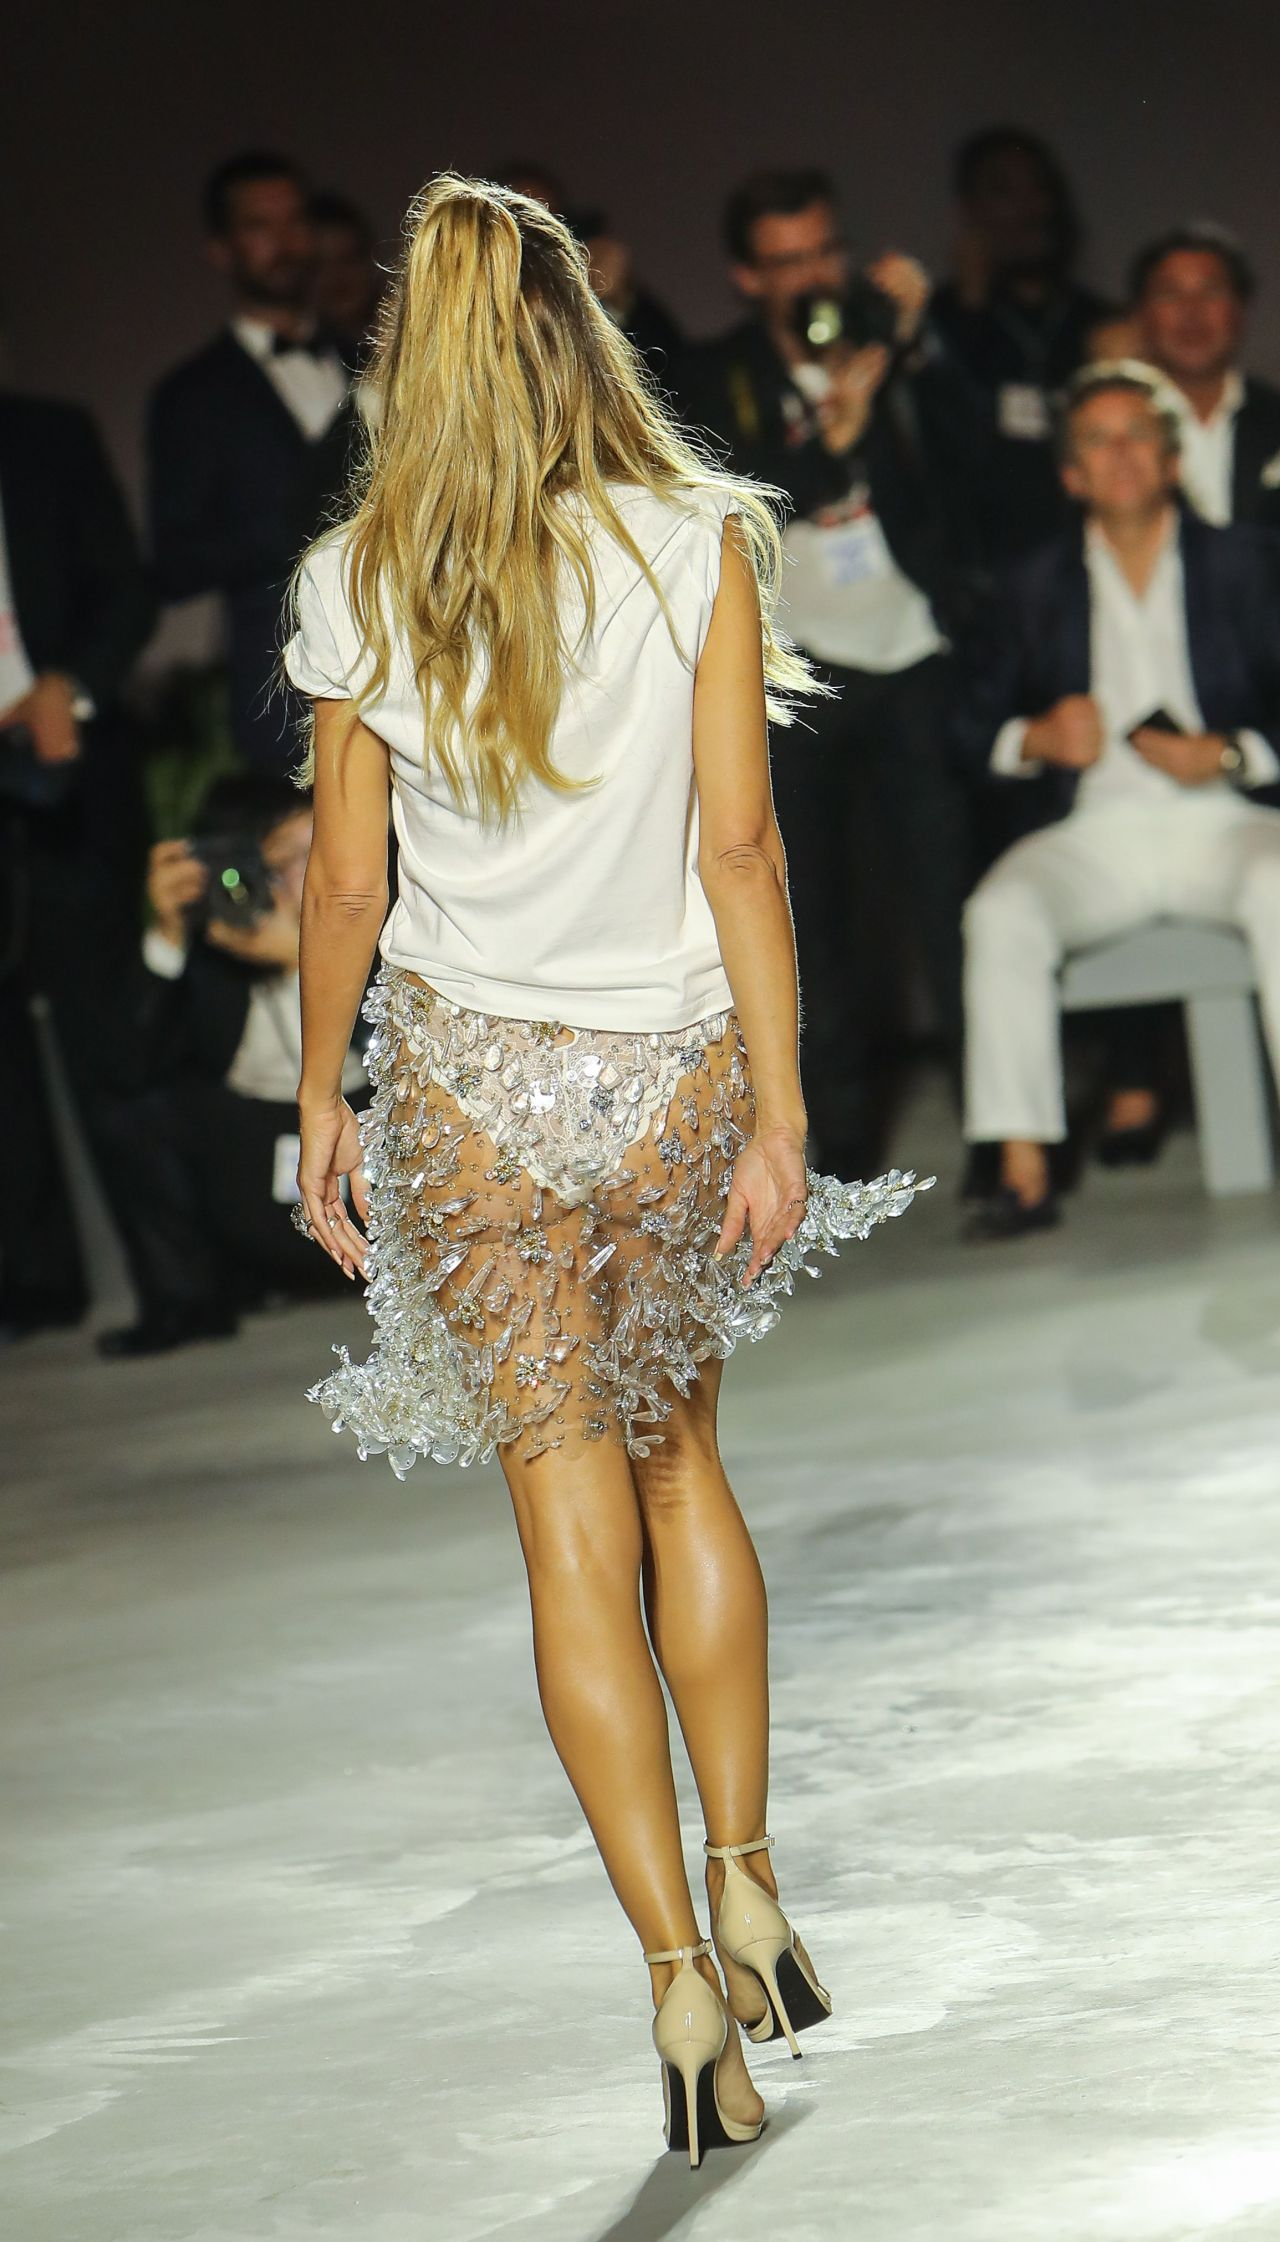 Heidi Klum Fashion For Relief At Cannes Film Festival 05